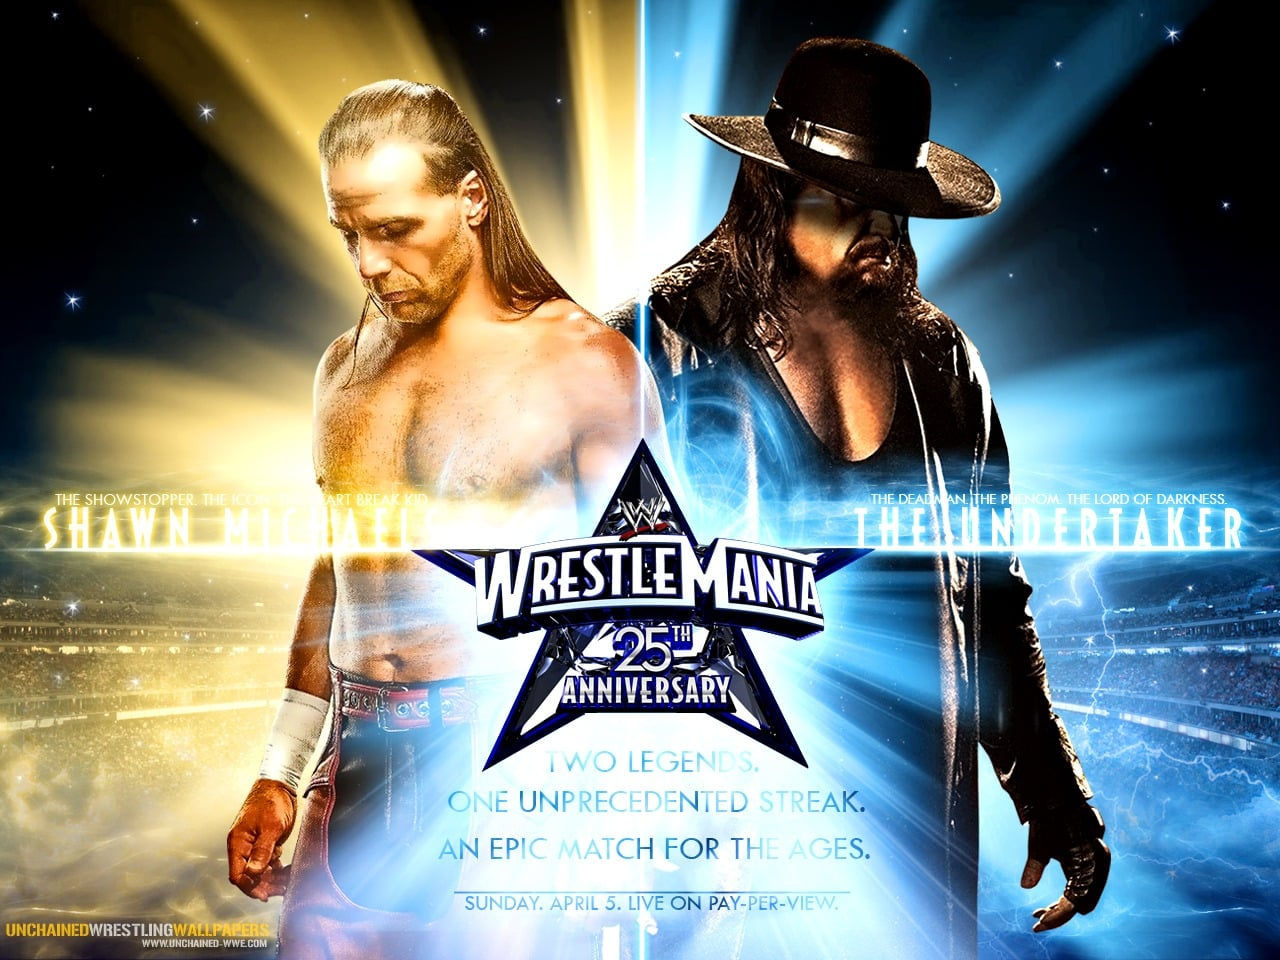 Ten years later, Undertaker and Shawn Michaels is still the GOAT